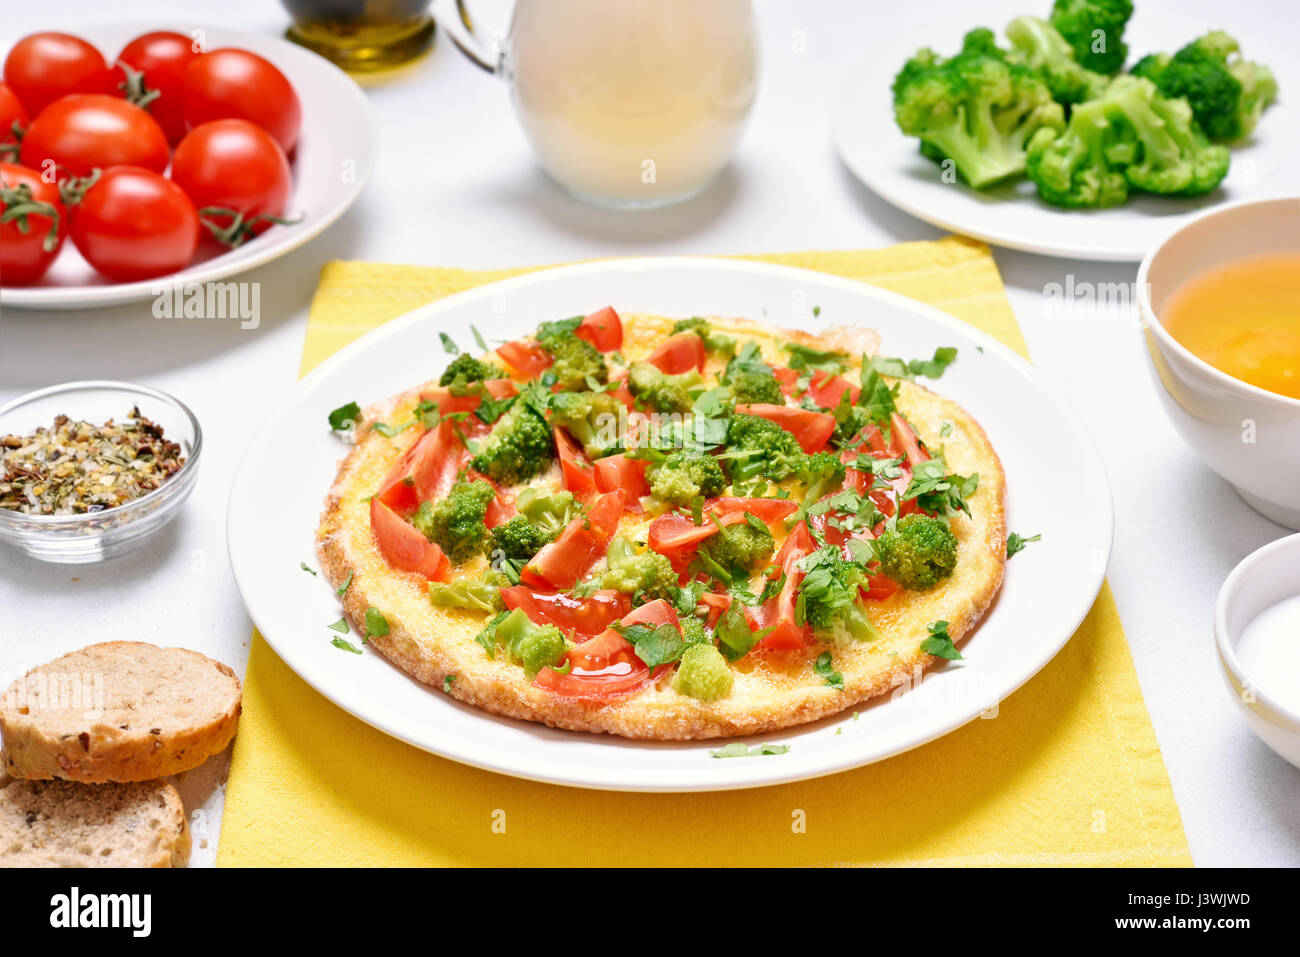 Breakfast with fried eggs. Omelet with vegetables on plate - Stock Image